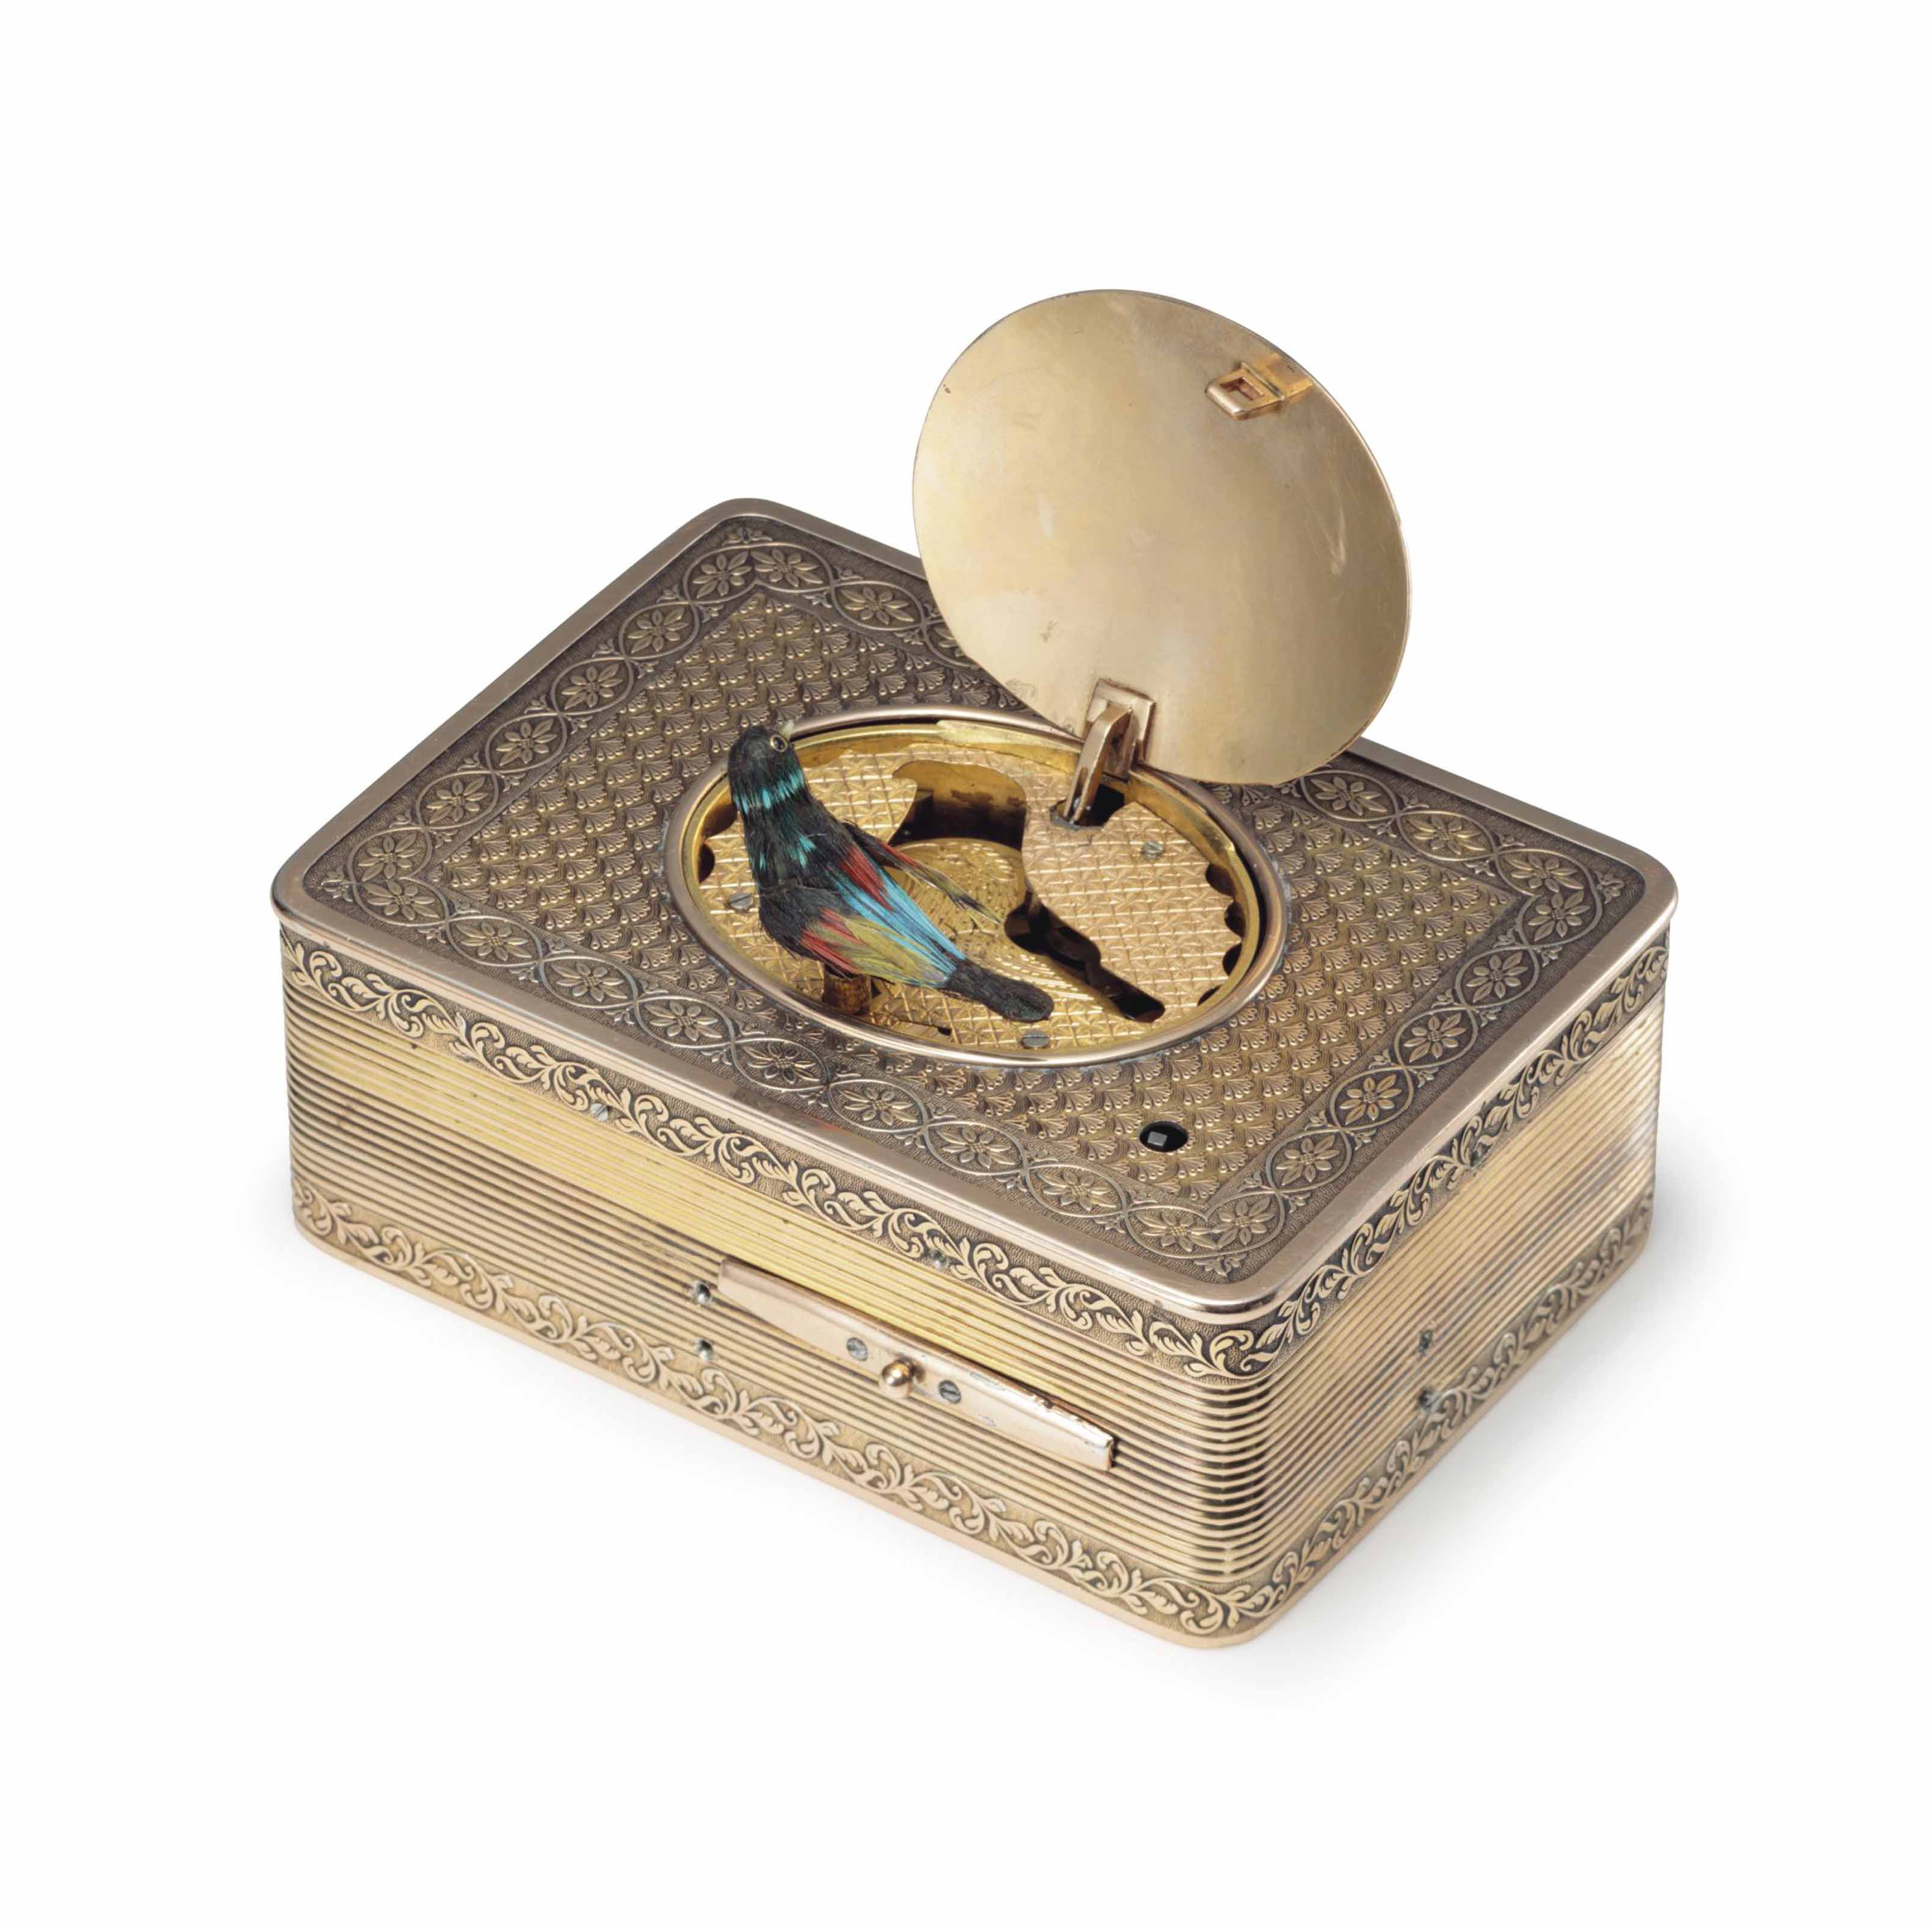 Frères Rochat. A Fine and Rare Silver-gilt and Enamel Singing Bird Box with Original Presentation Box